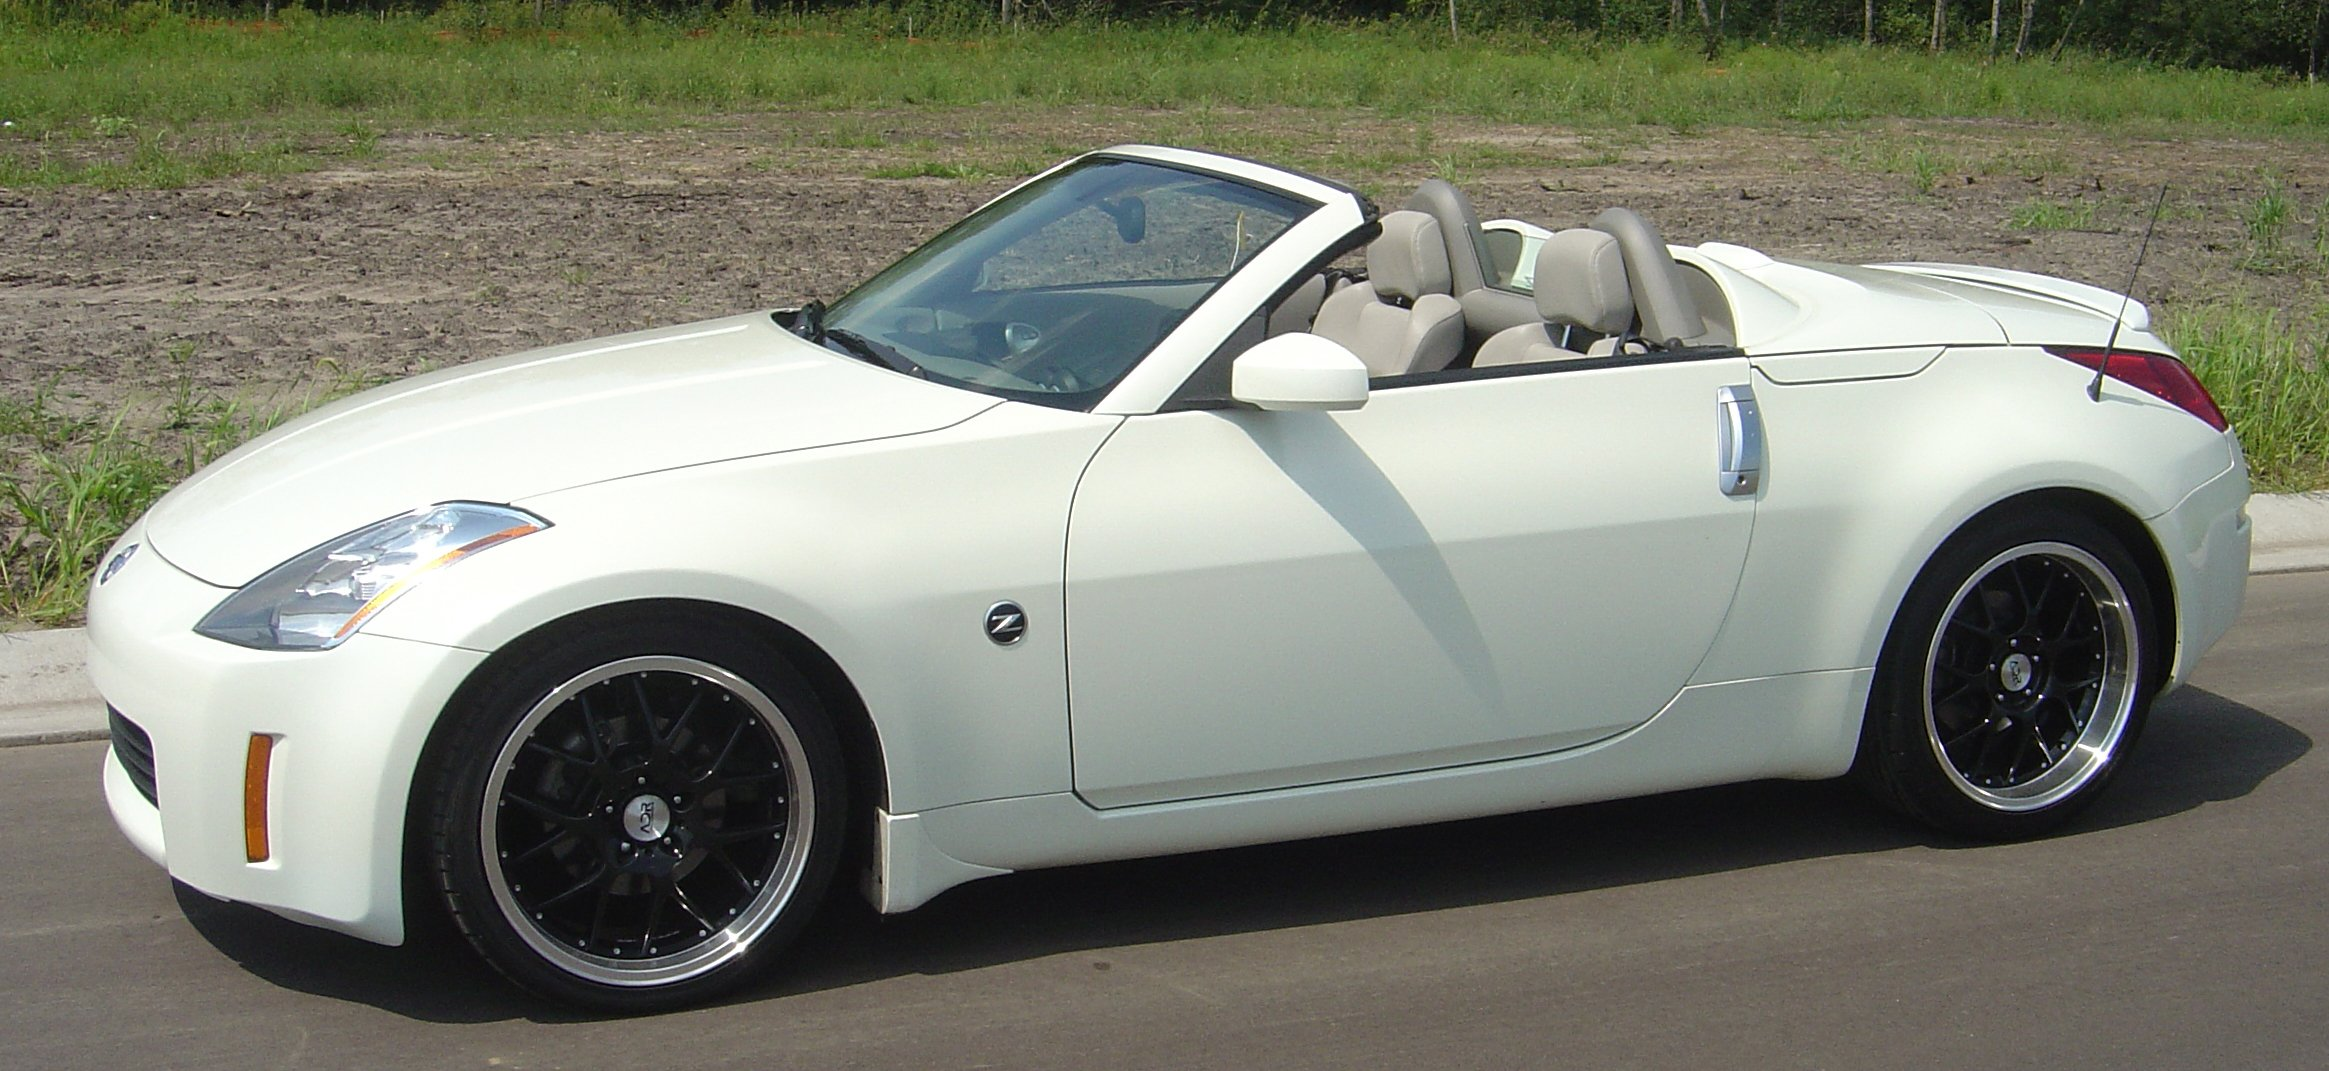 Advise Needed Coupe Or Roadster Page 2 Nissan 350z